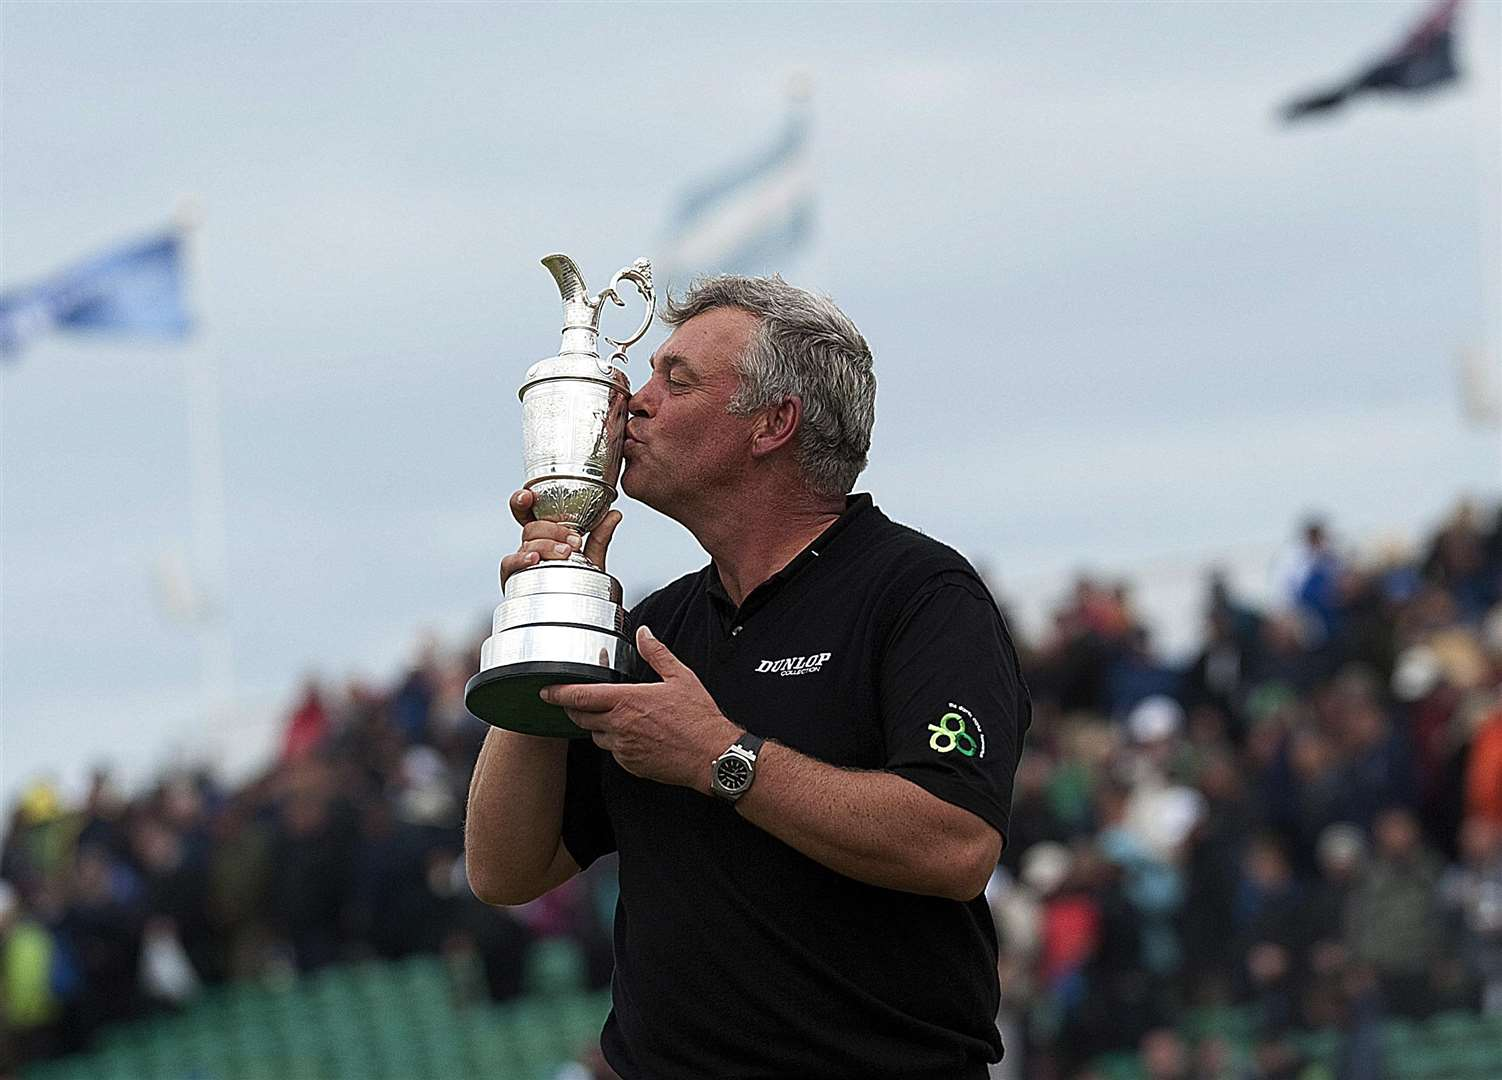 Darren Clarke - winner of The Open 2011 at Royal St George's. Picture: Barry Goodwin